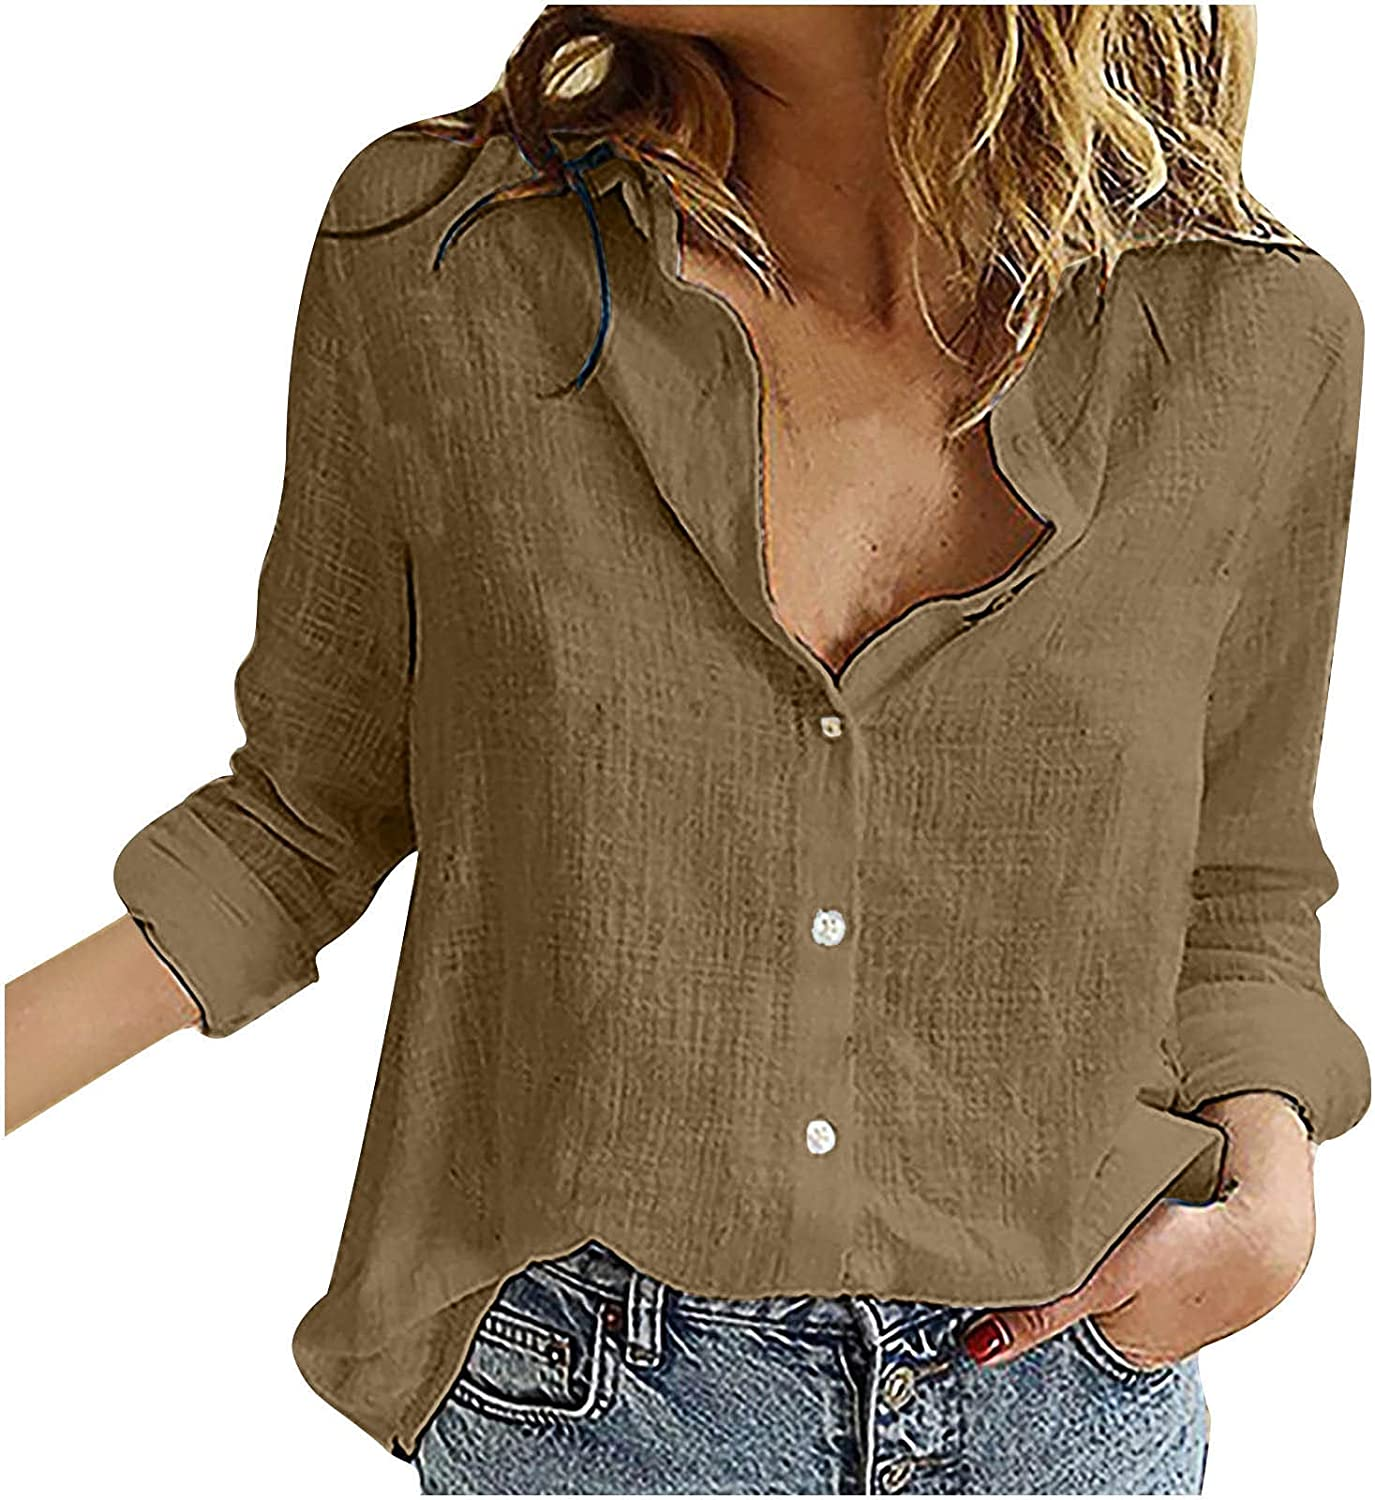 Hesxuno Womens Summer Casual Long Sleeve Button Down Shirts Trendy Solid Color Work Office Business Loose Fit Tops Blouse